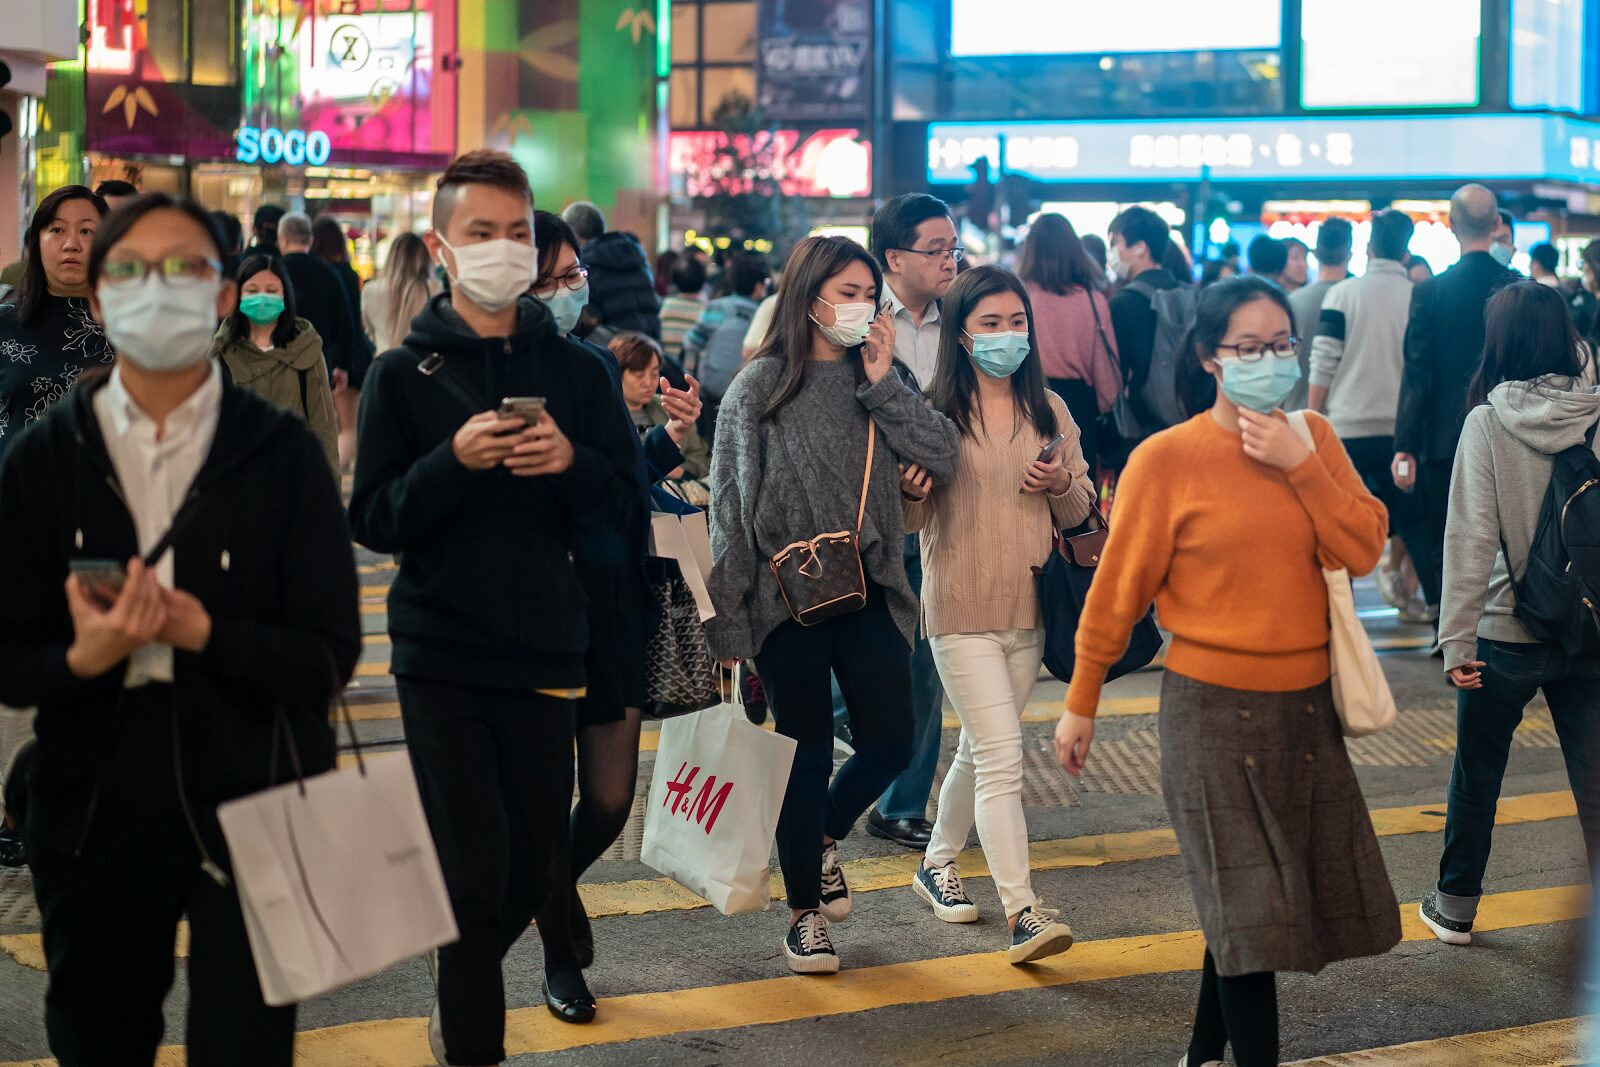 Pedestrians wear face masks as they walk through a crosswalk in Causeway Bay on January 23, 2020 in Hong Kong. Anthony Kwan/Getty Images (from a CNN article)